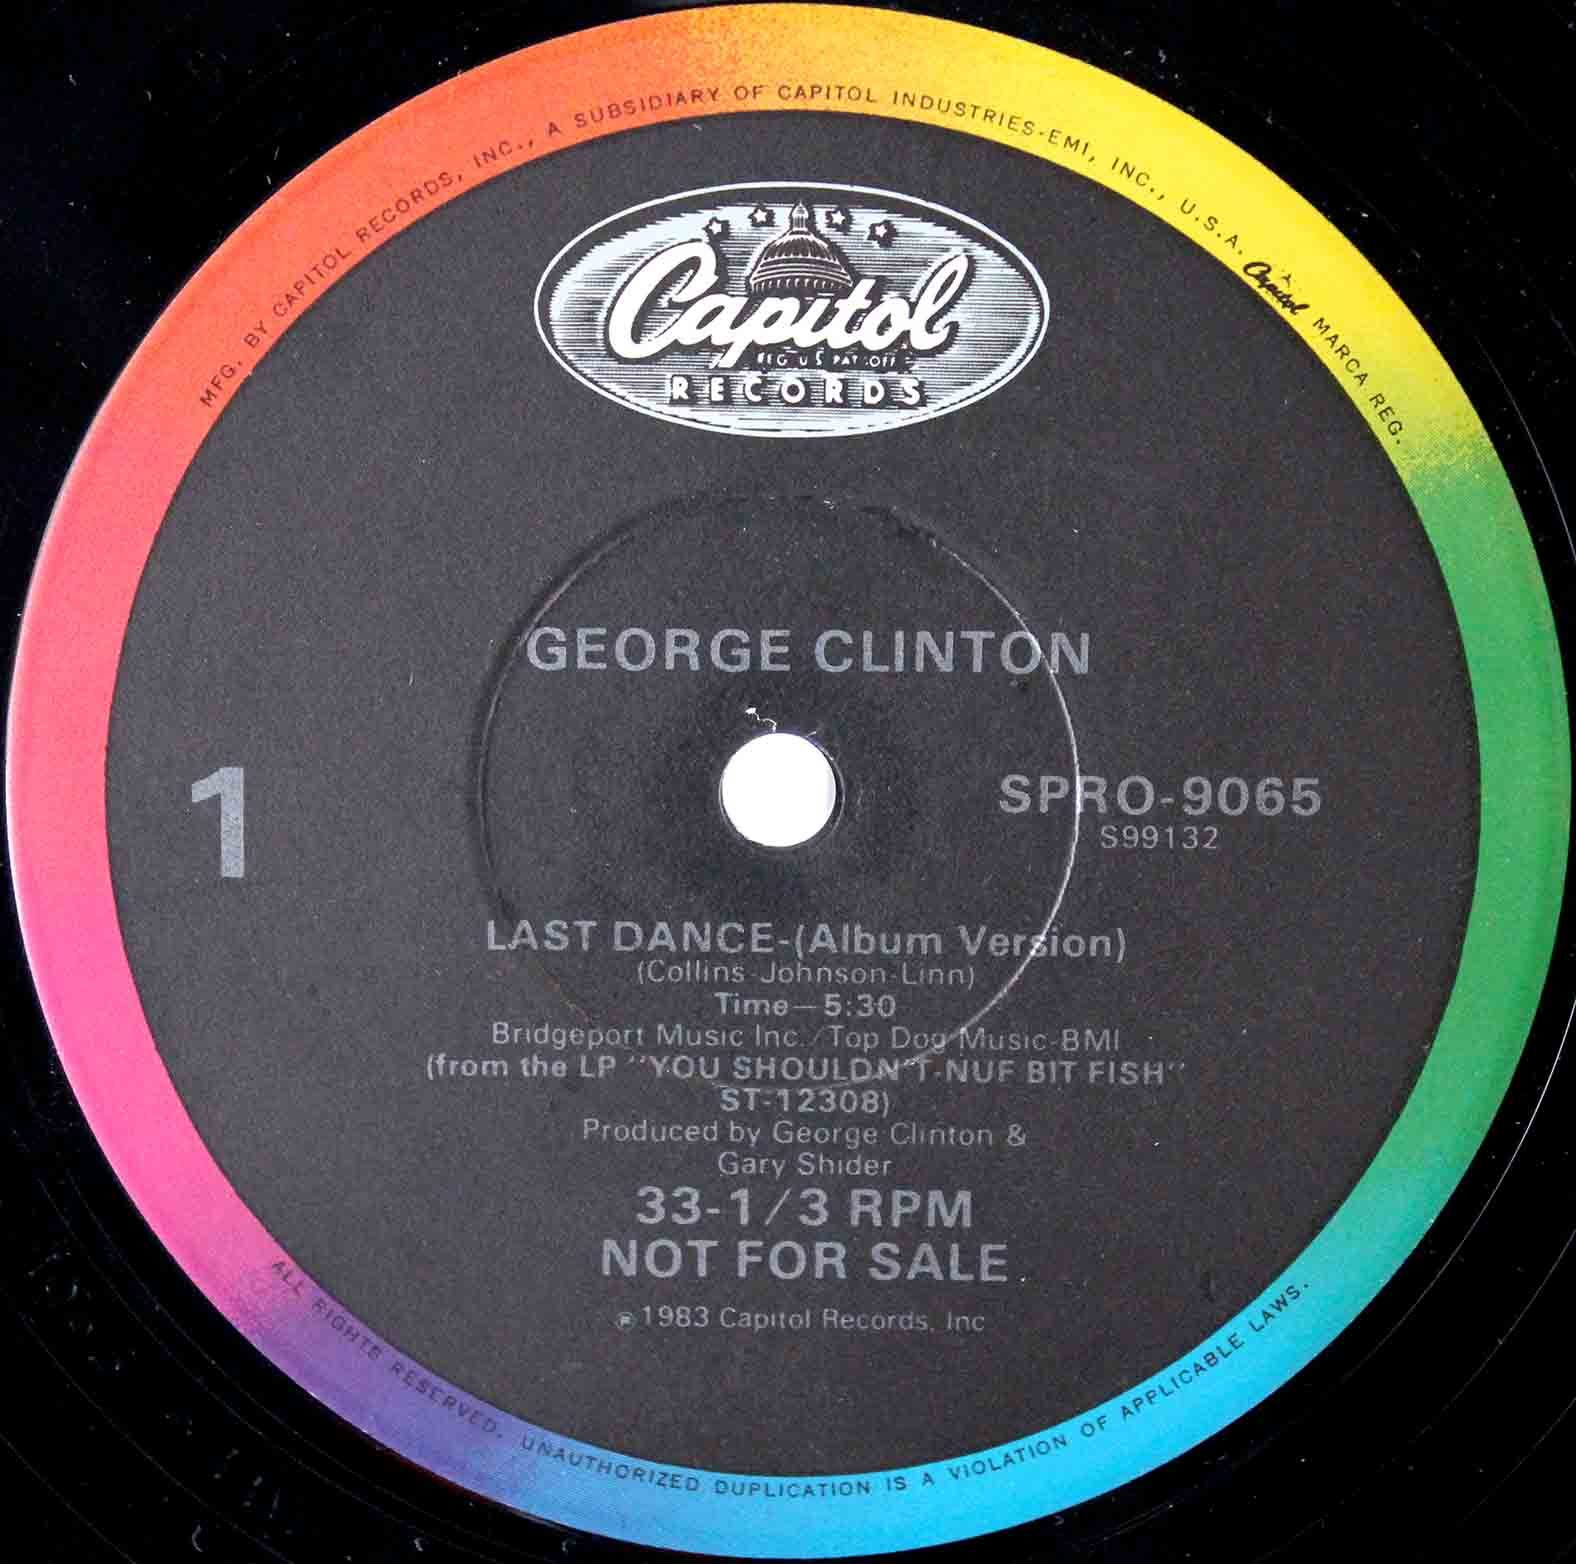 George Clinton - Last Dance 04